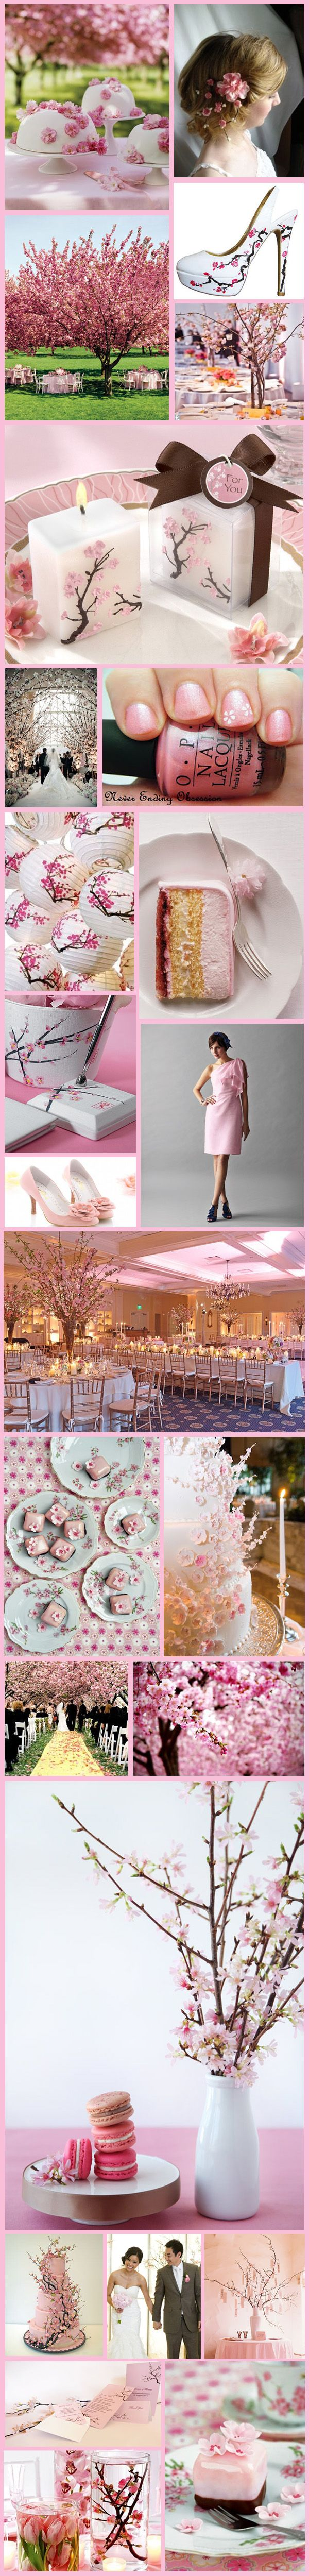 Wednesday Wedding Inspiration: Cherry Blossom Inspiration Board                        via bespoke-bride.com  -  Wendy Schultz - Bridal Parties.